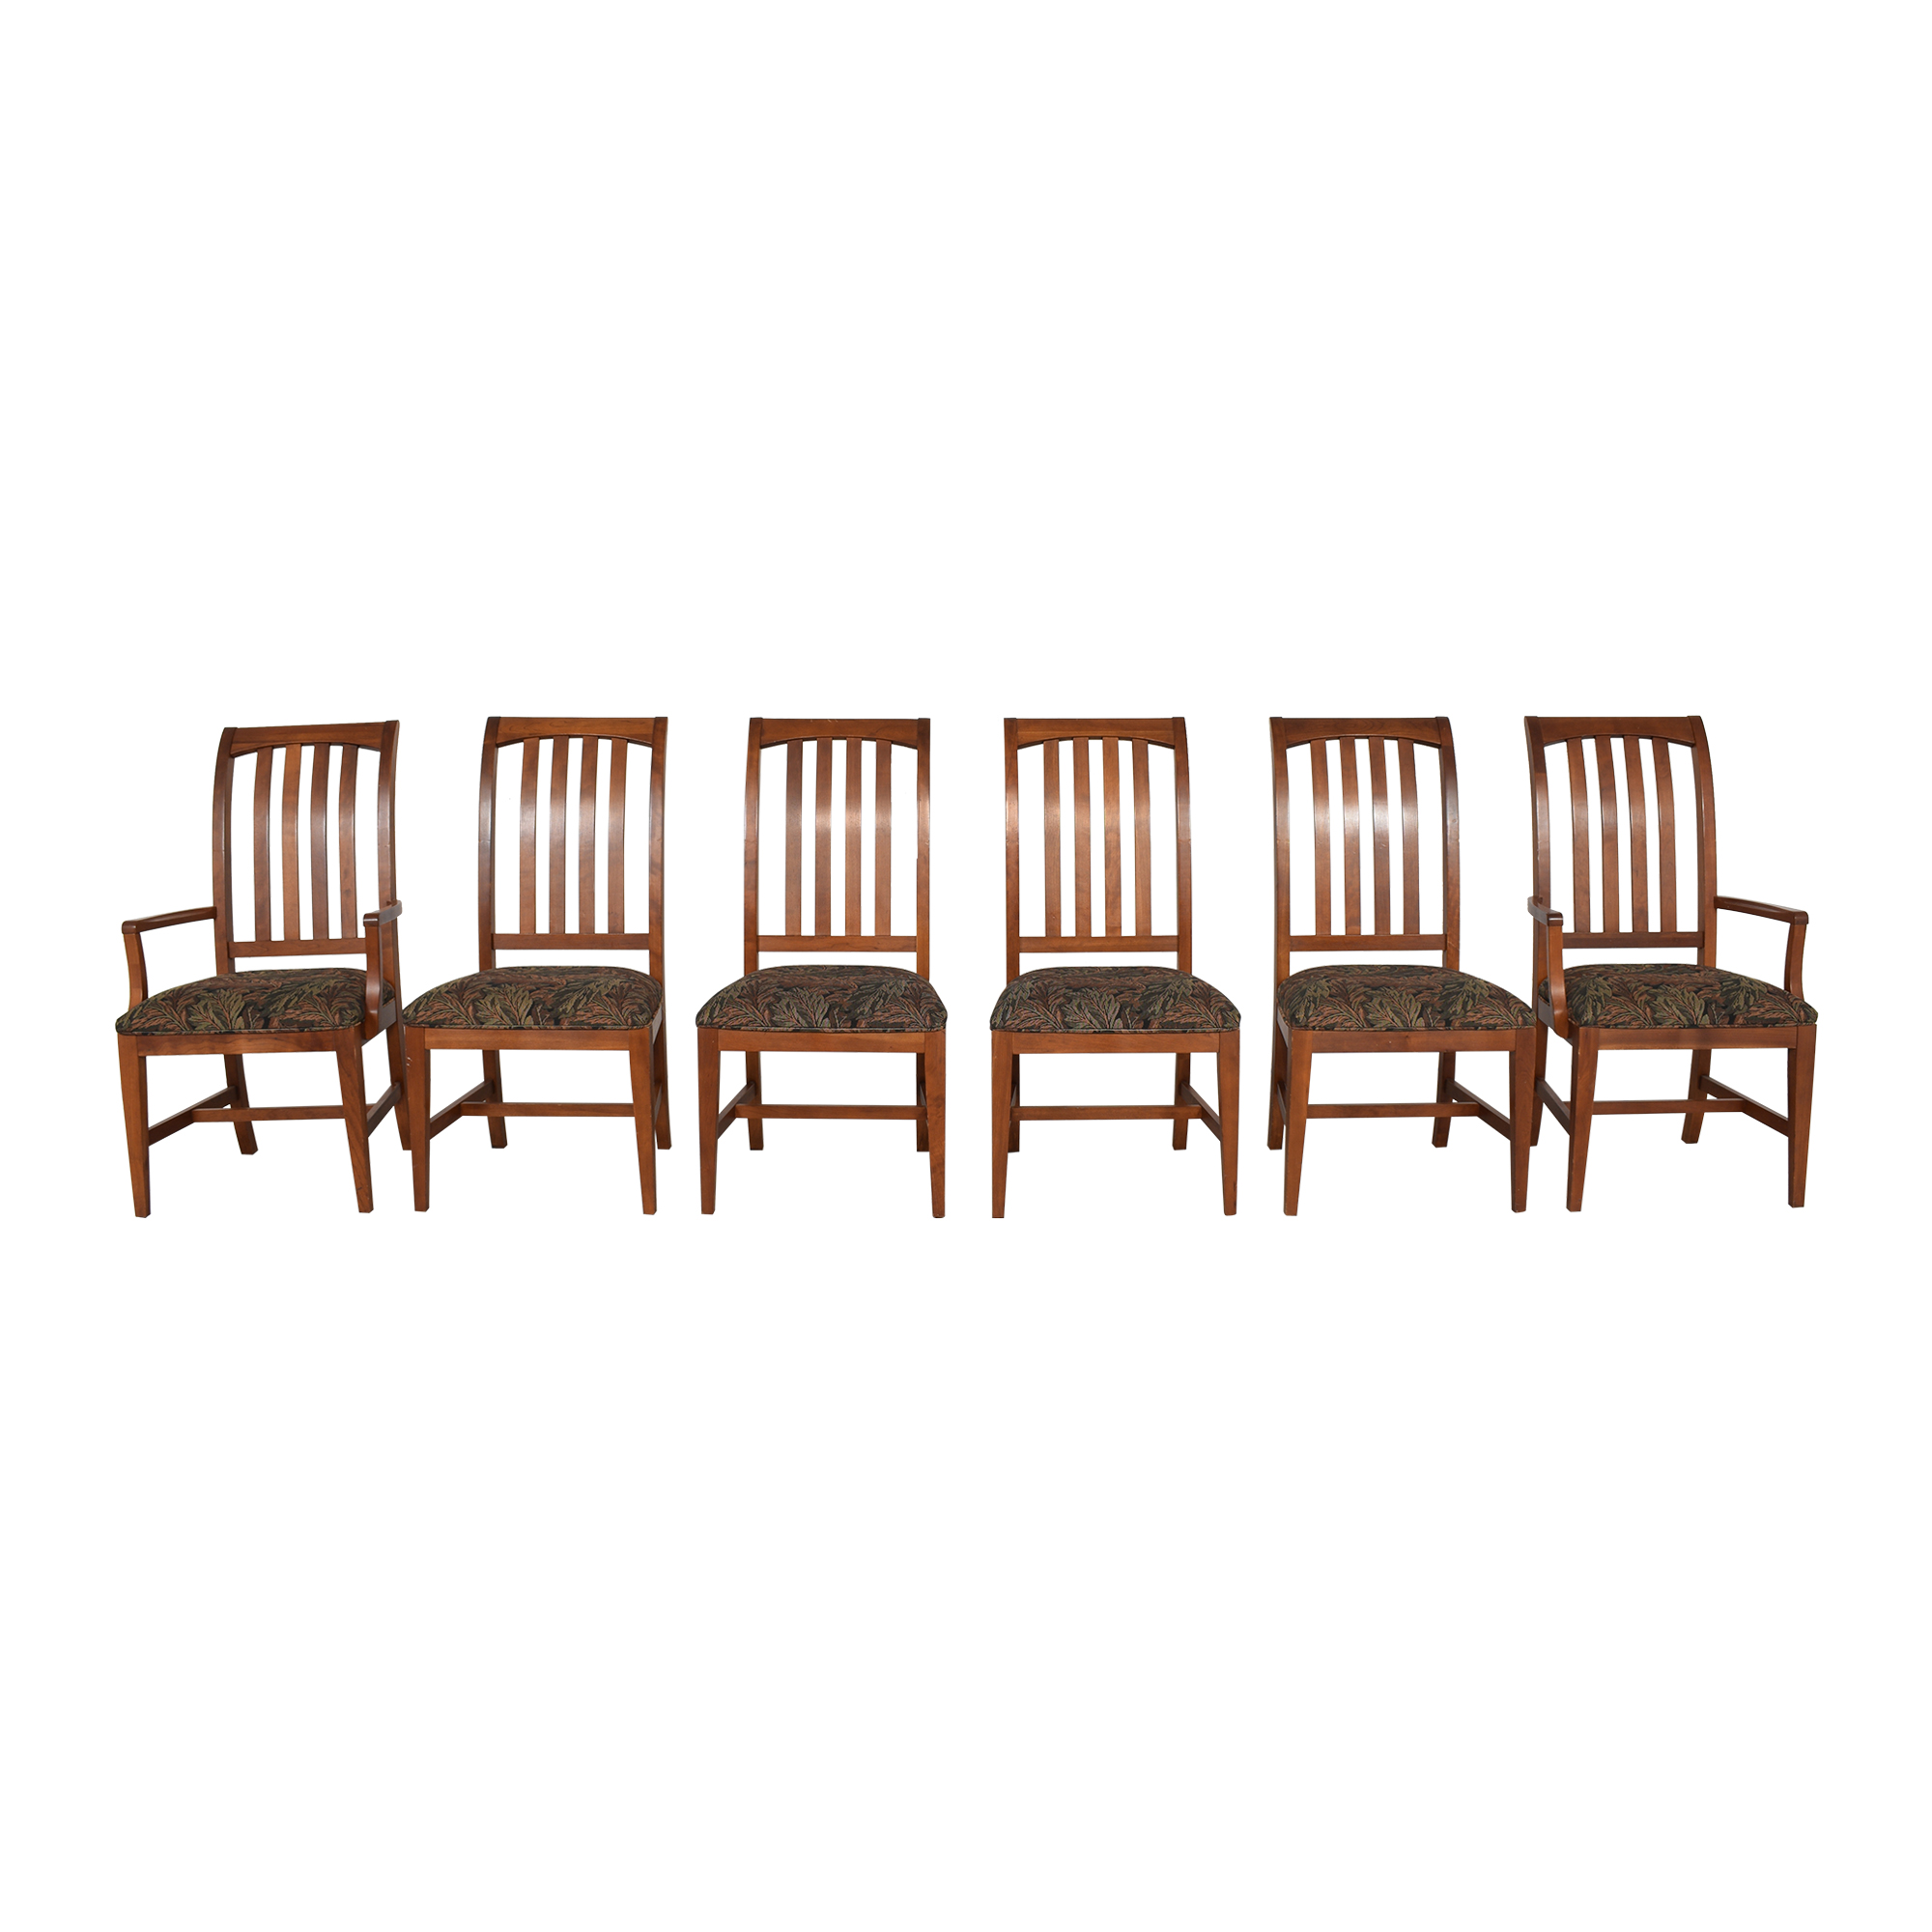 shop Ethan Allen American Impressions Chairs Ethan Allen Dining Chairs